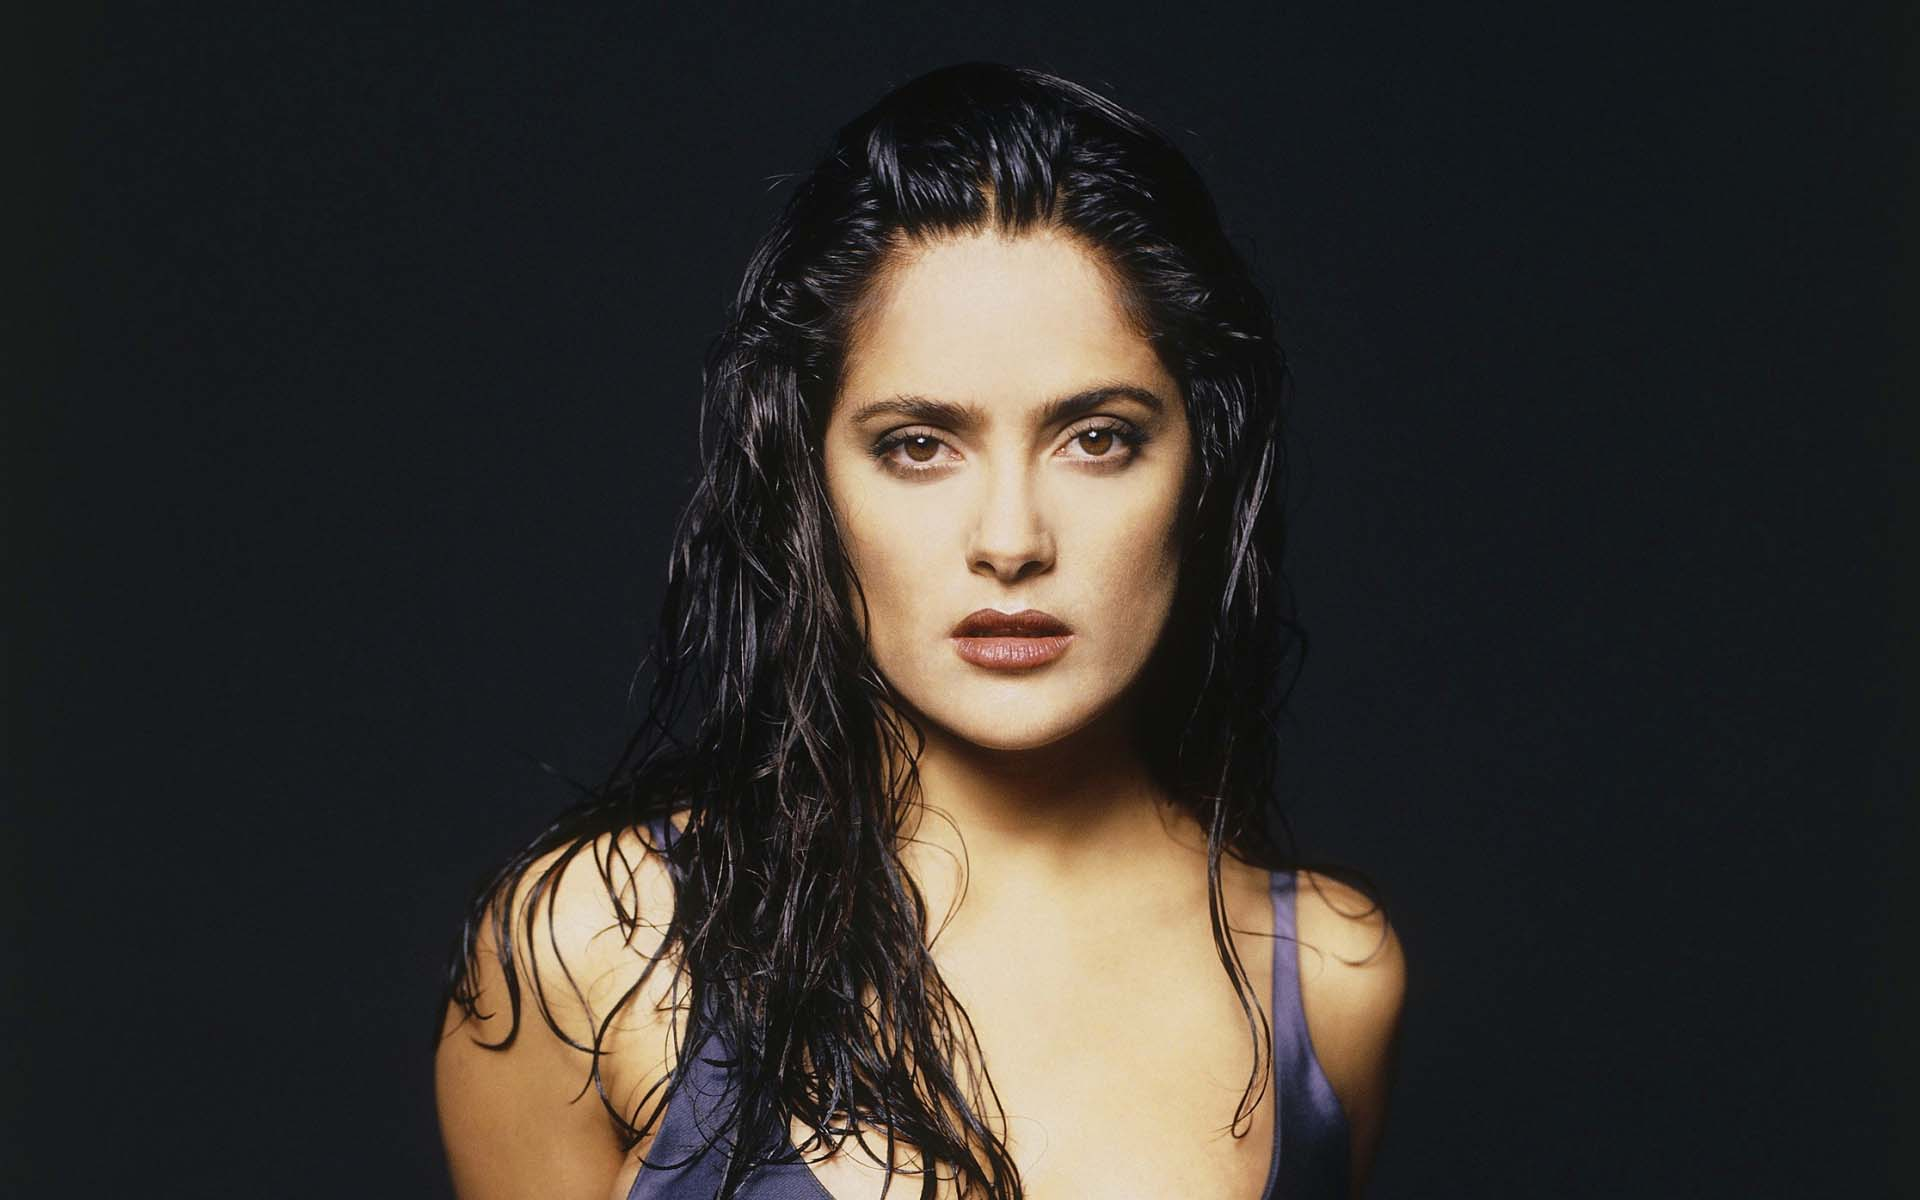 Salma Hayek Wet Hair Exclusive HD Wallpapers #6919